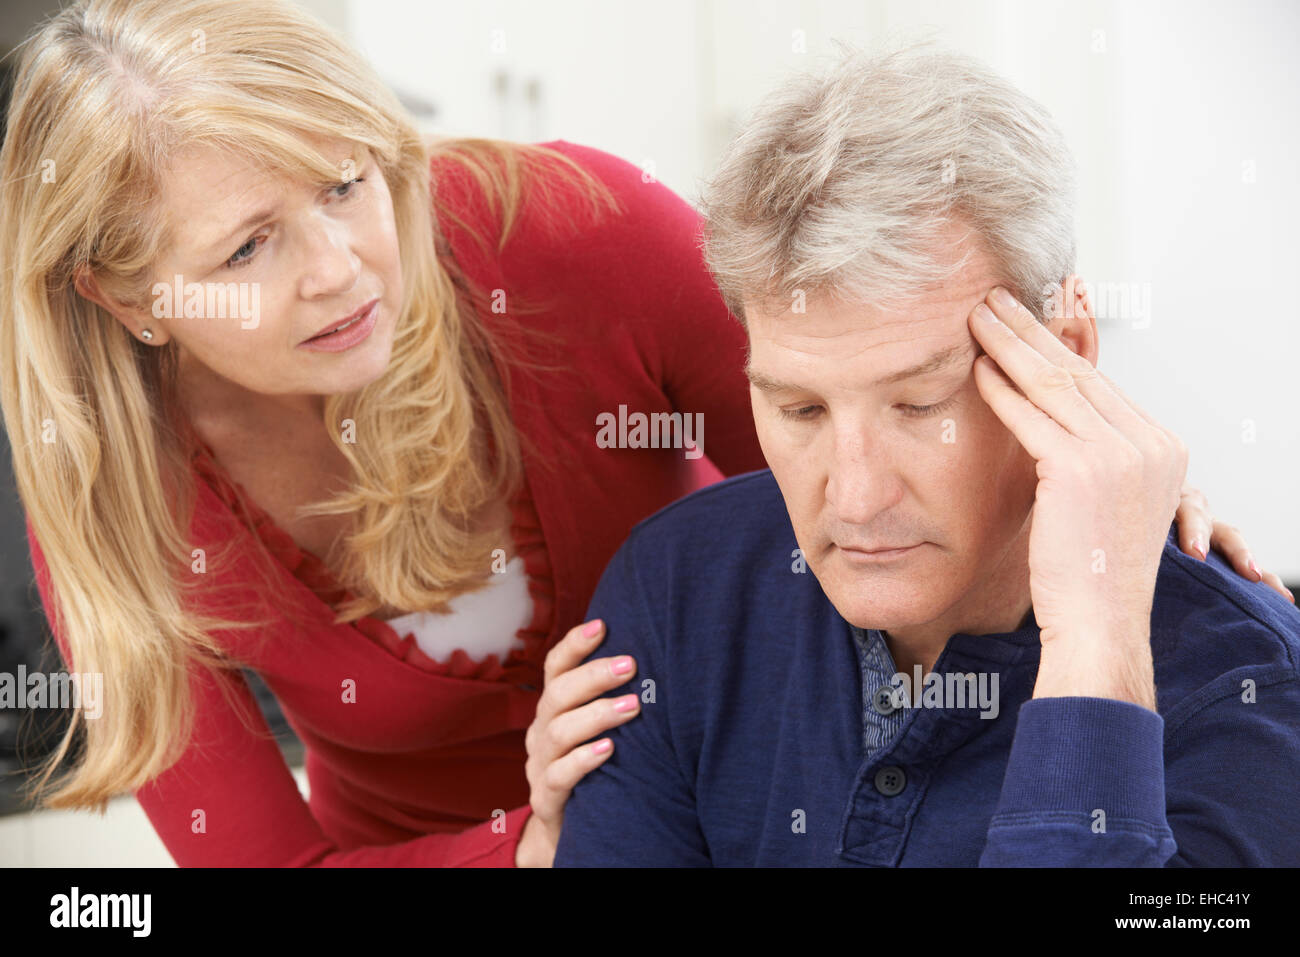 Mature Woman Comforting Man With Depression - Stock Image